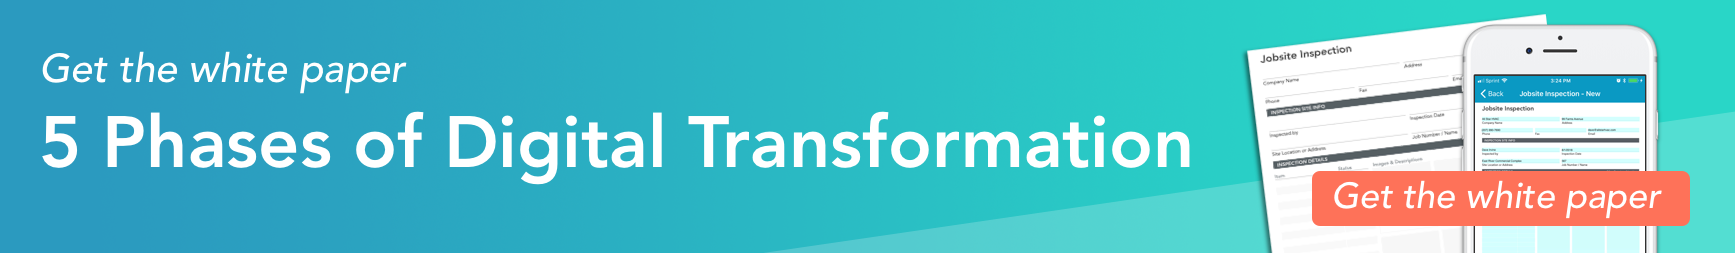 Discover how mobile forms can help your team conquer their digital transformation